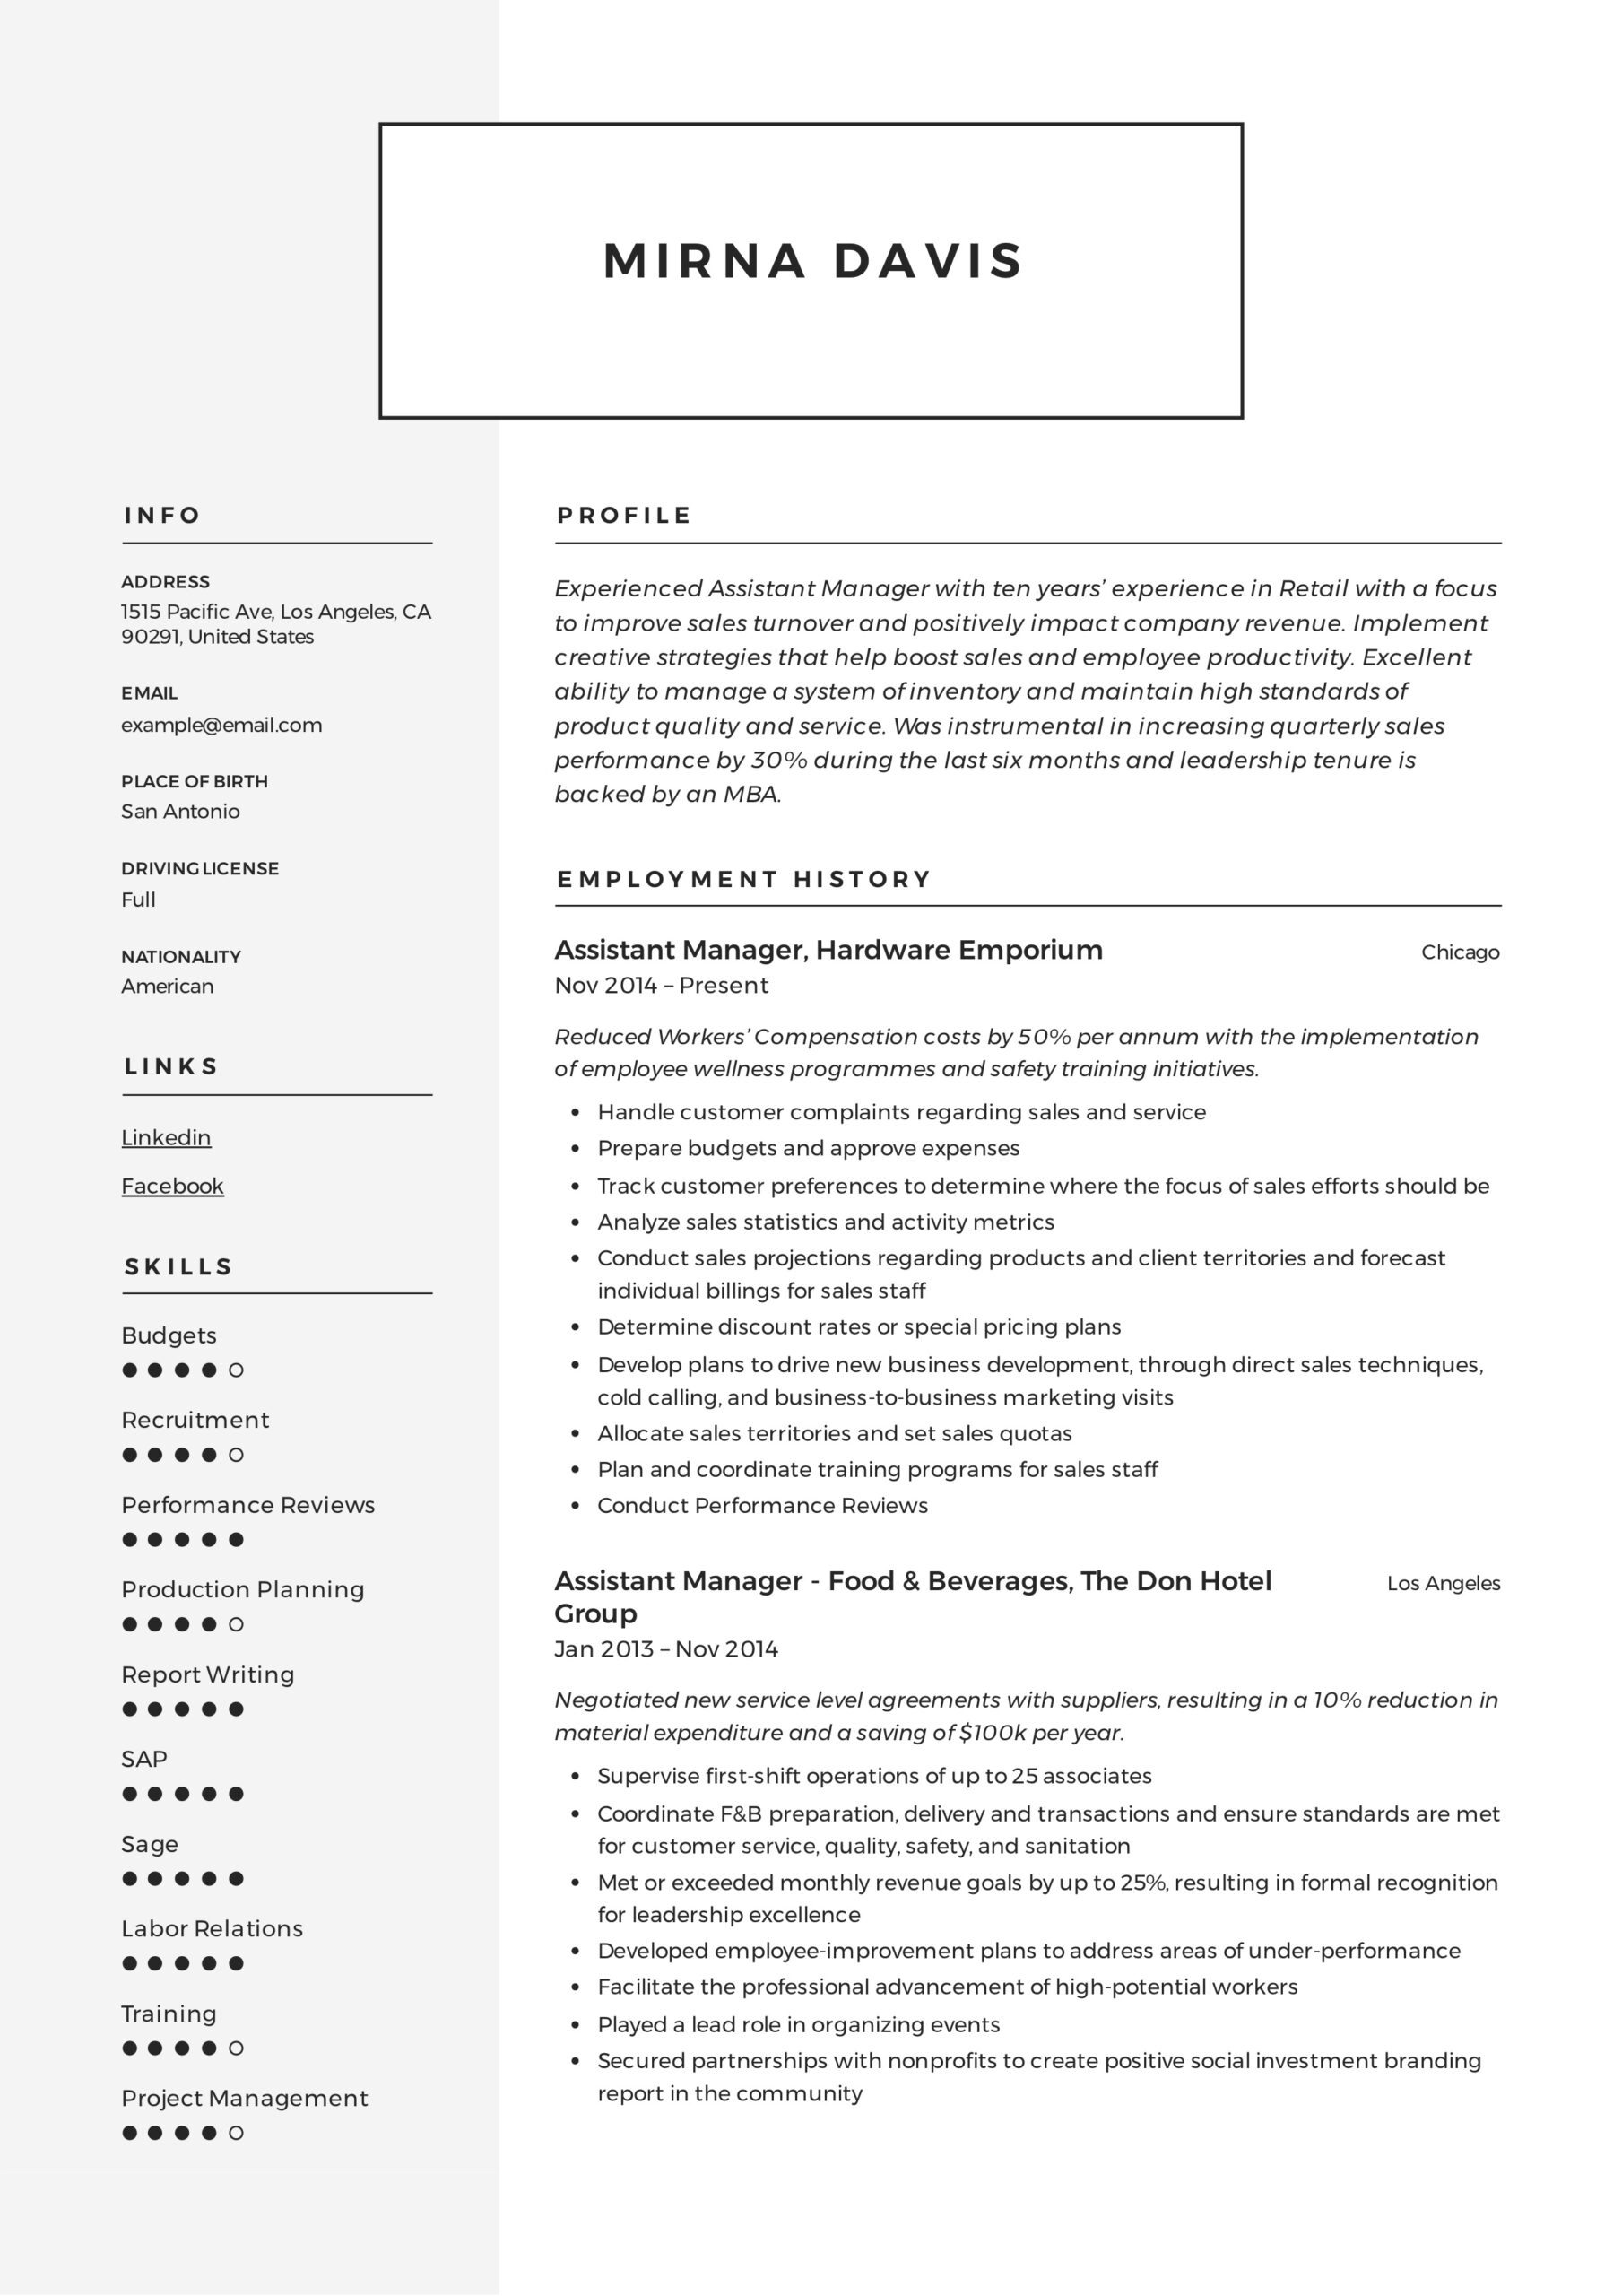 assistant manager resume writing guide samples pdf sample finance accounts mirna customer Resume Sample Resume Assistant Manager Finance & Accounts